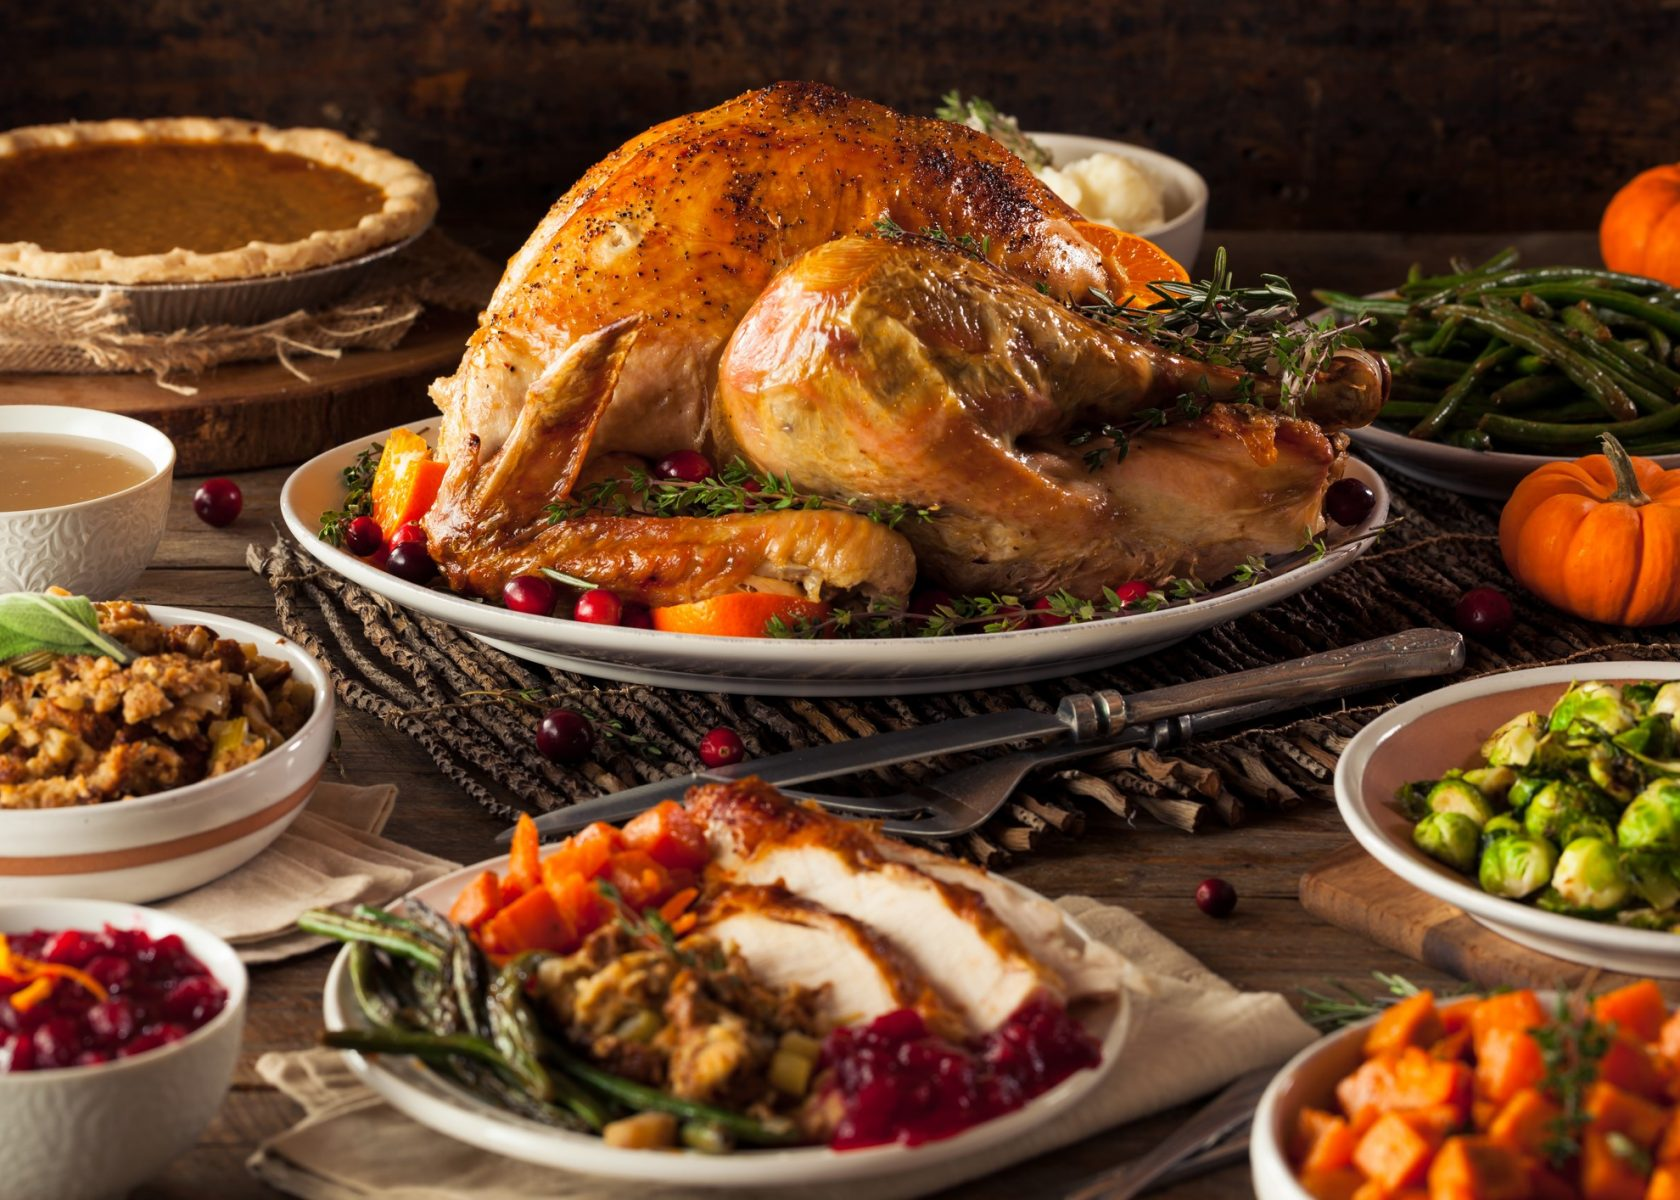 Healthy Eating Tips to Help You Enjoy the Holidays